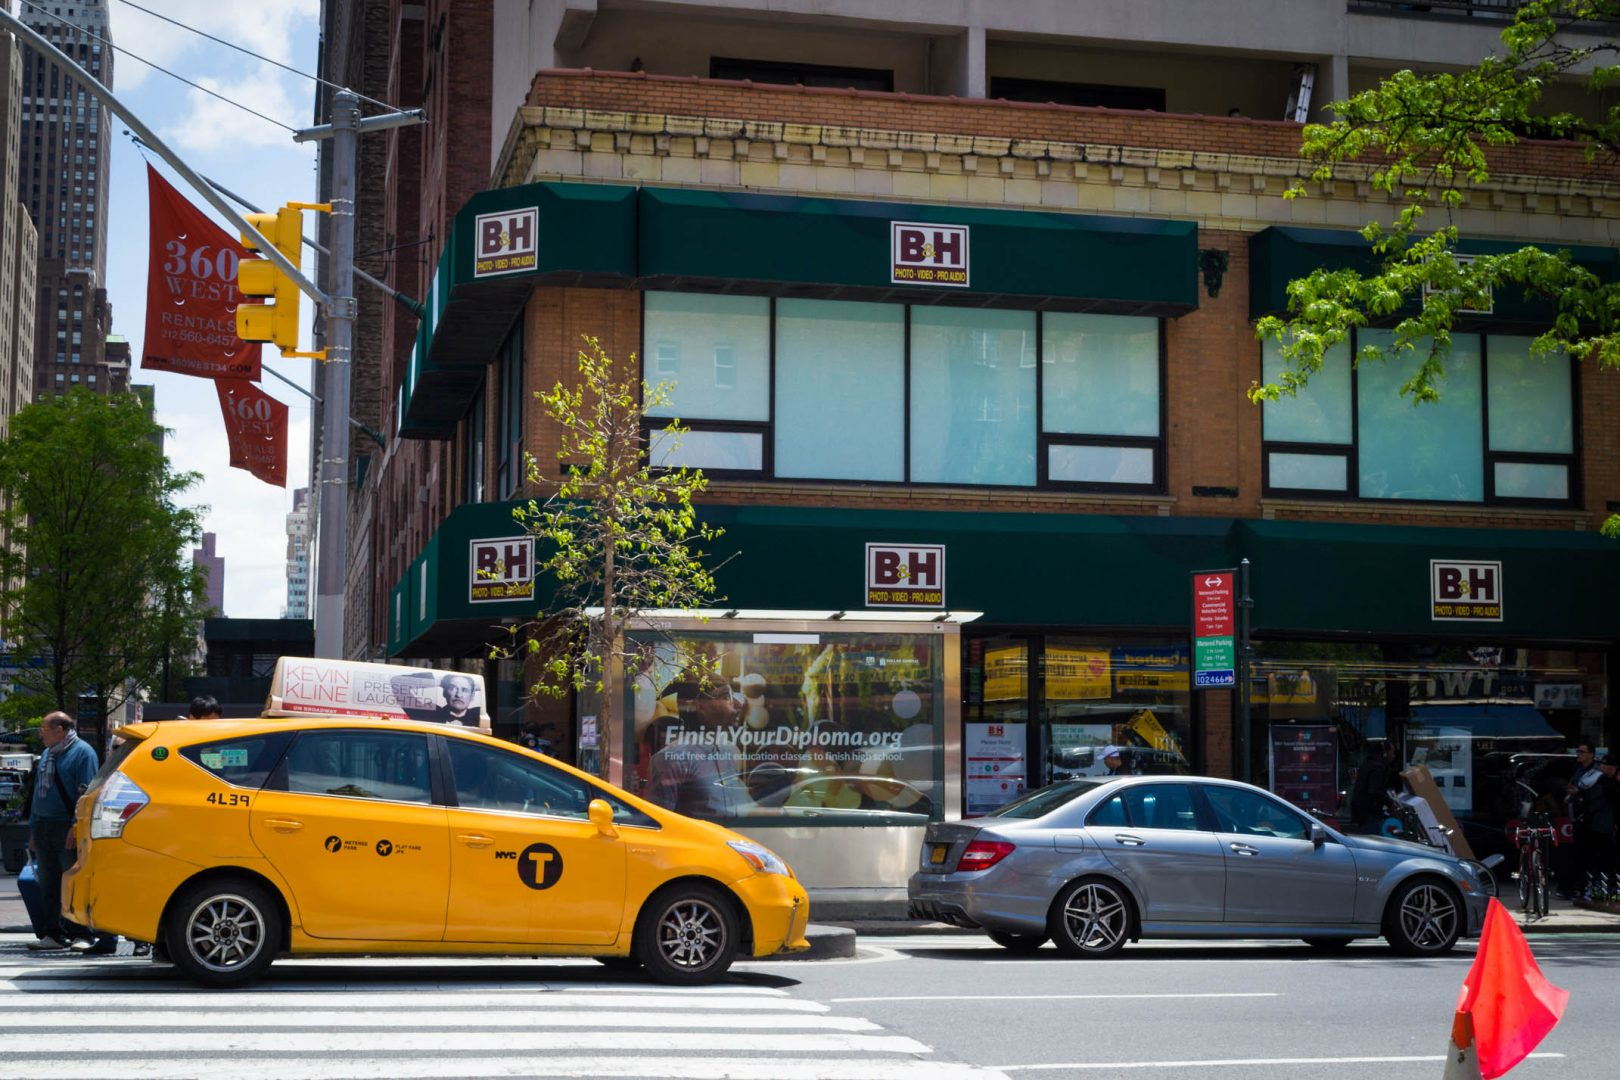 [ZOOM SUR] Le magasin B&H de New-York